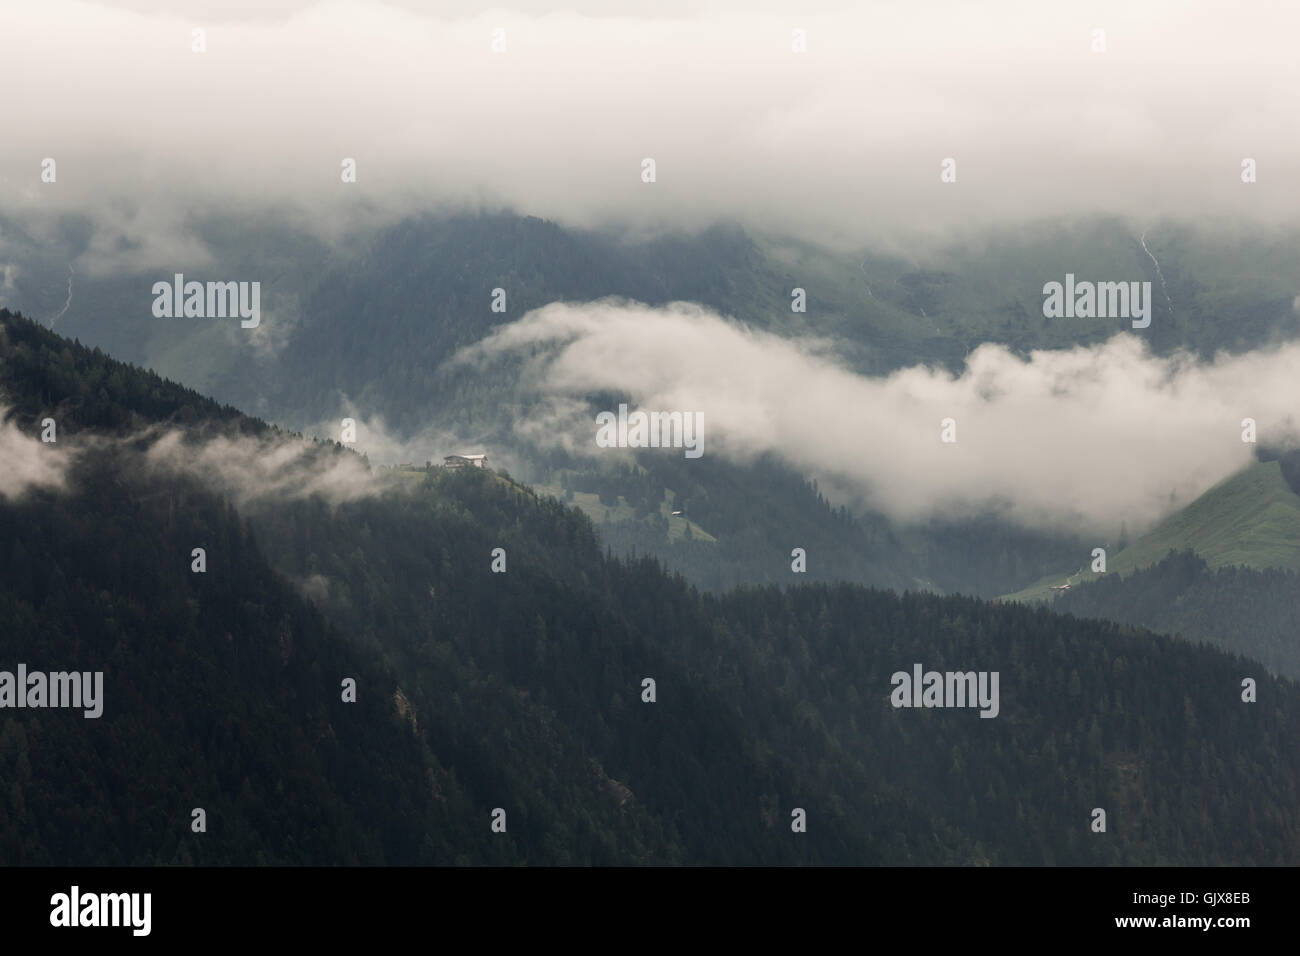 View of a mountain with clouds in a rainy day in Zillertal, Austria Stock Photo